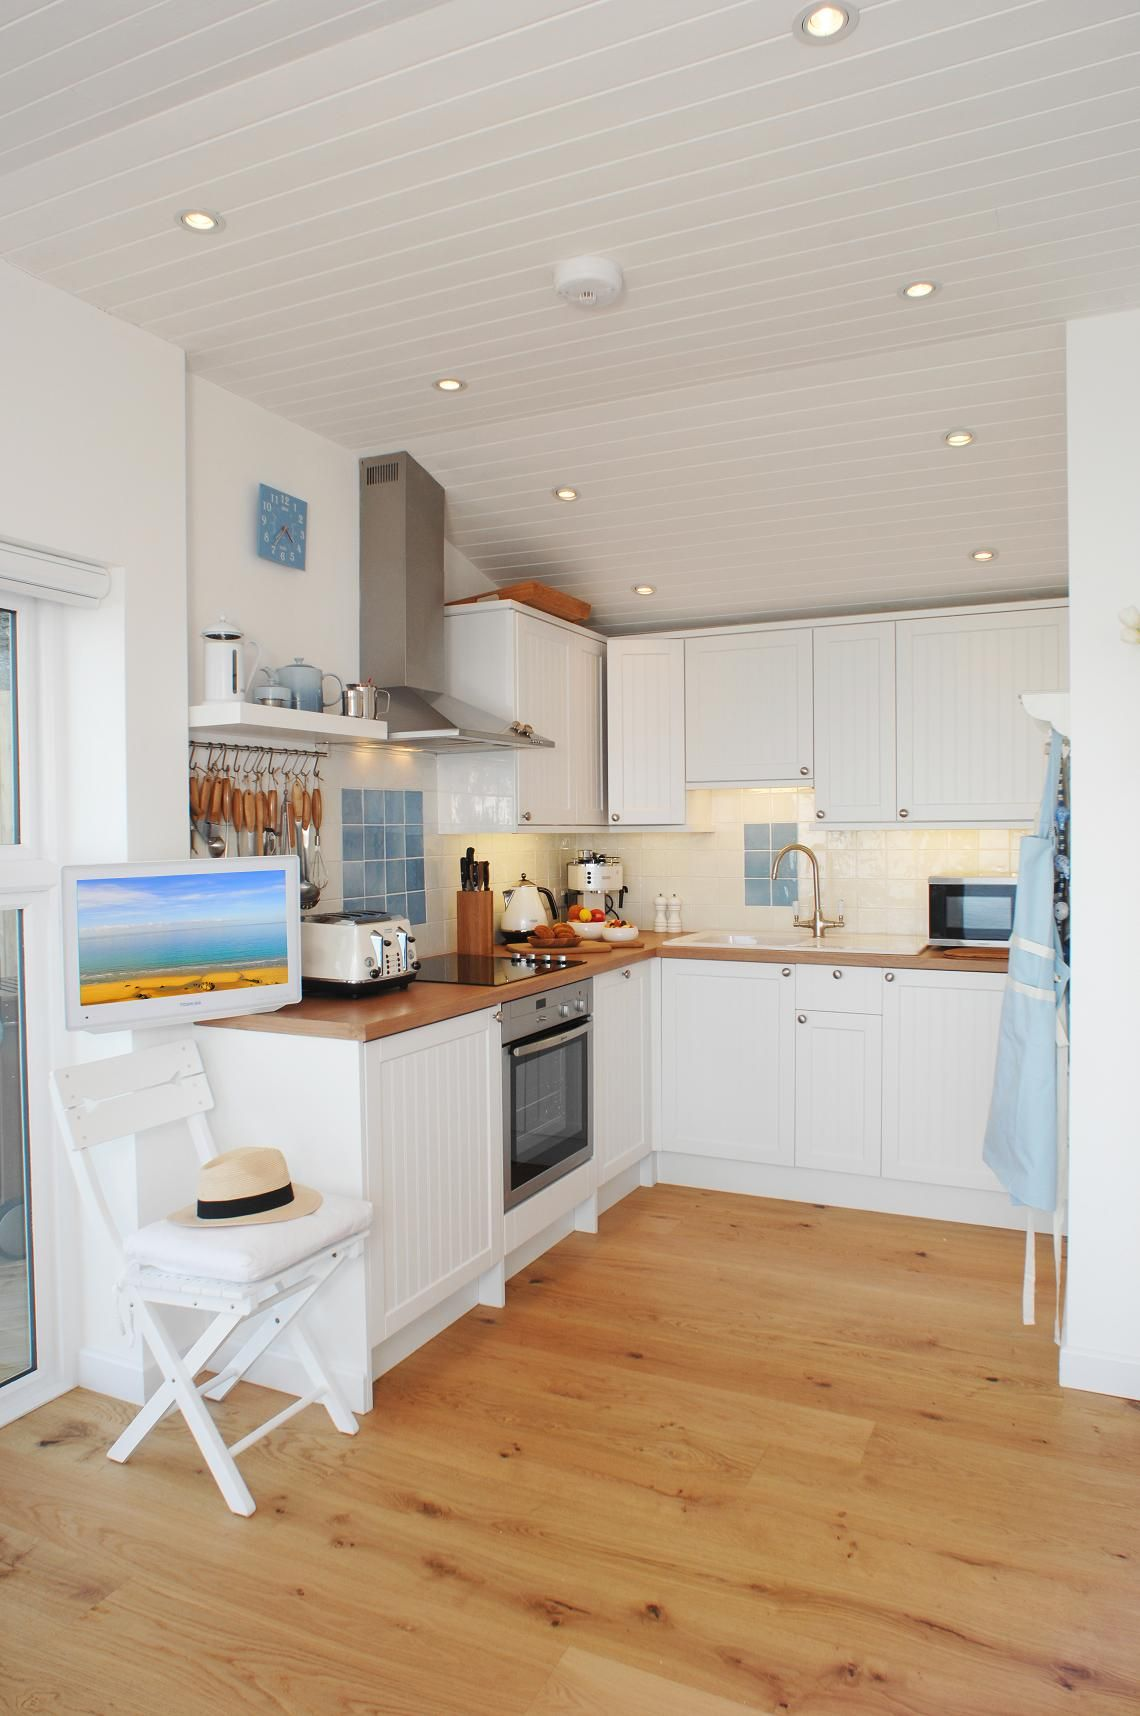 Best Of The Best Tiny House Kitchen Design Ideas That Feel Like